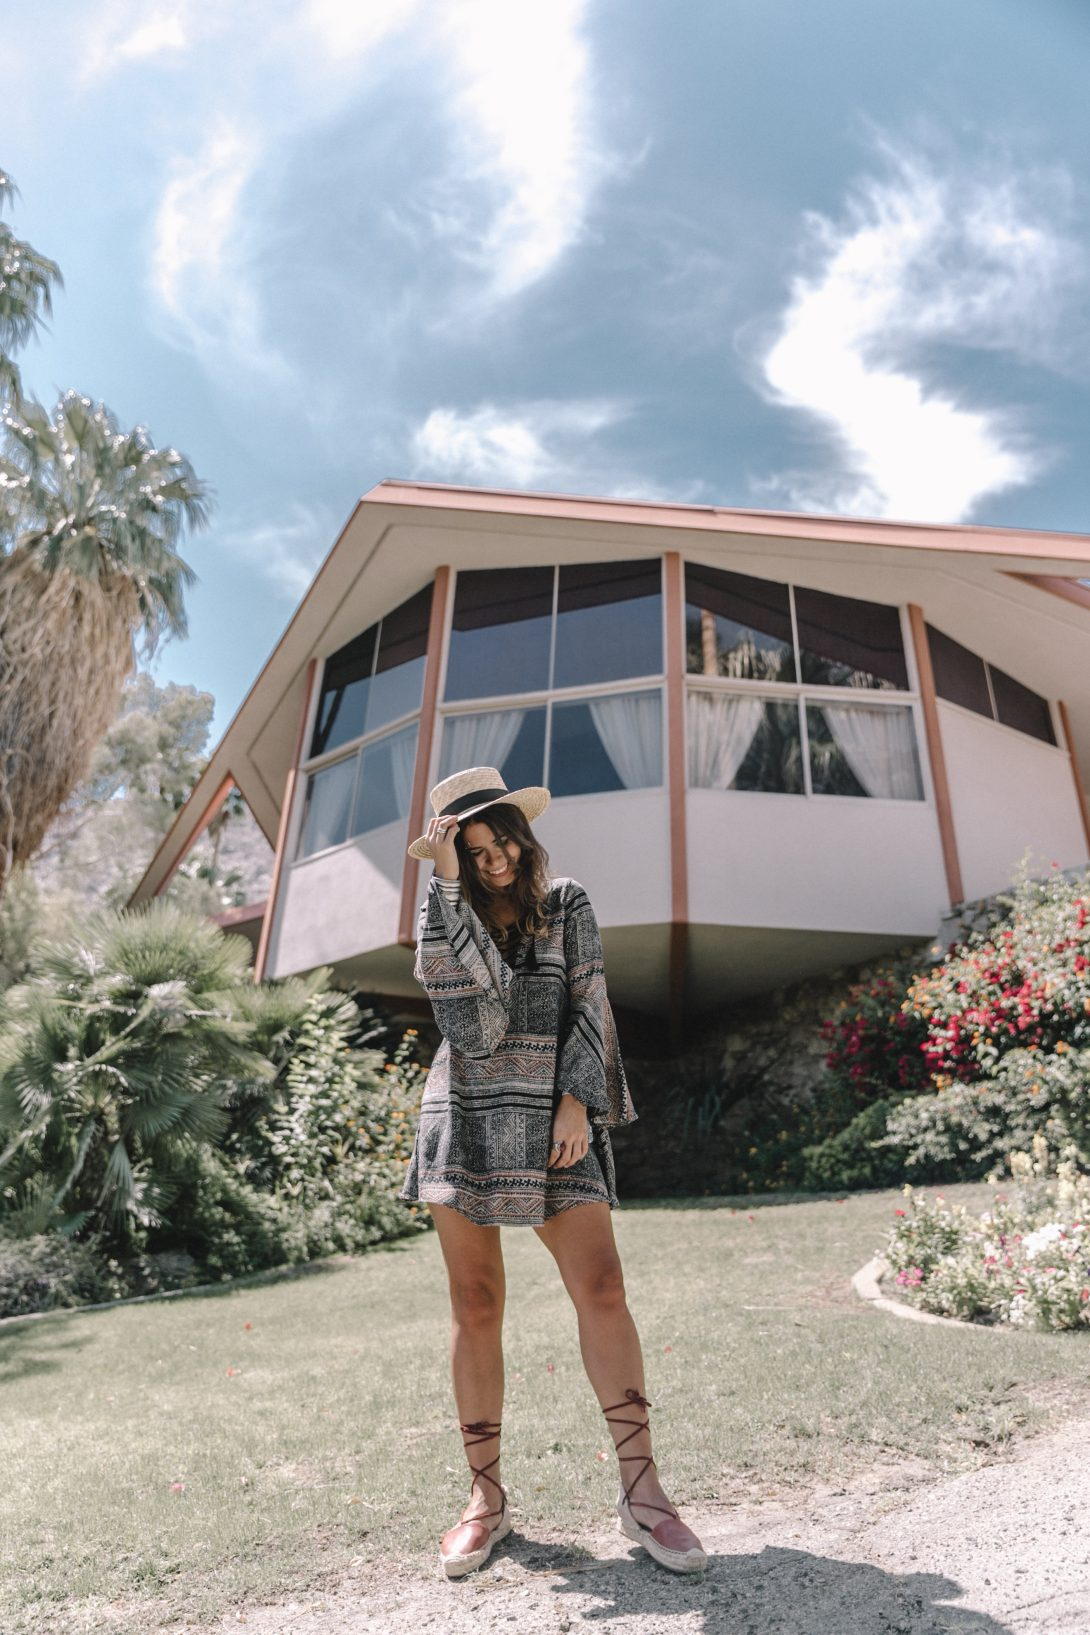 Boho_Dress-Lace_Up_Dress-Lack_of_Color-Revolve_Clothing-Straw_Hat-Soludos_Espadrilles-Palm_Springs-Outfit-Collage_Vintage-30